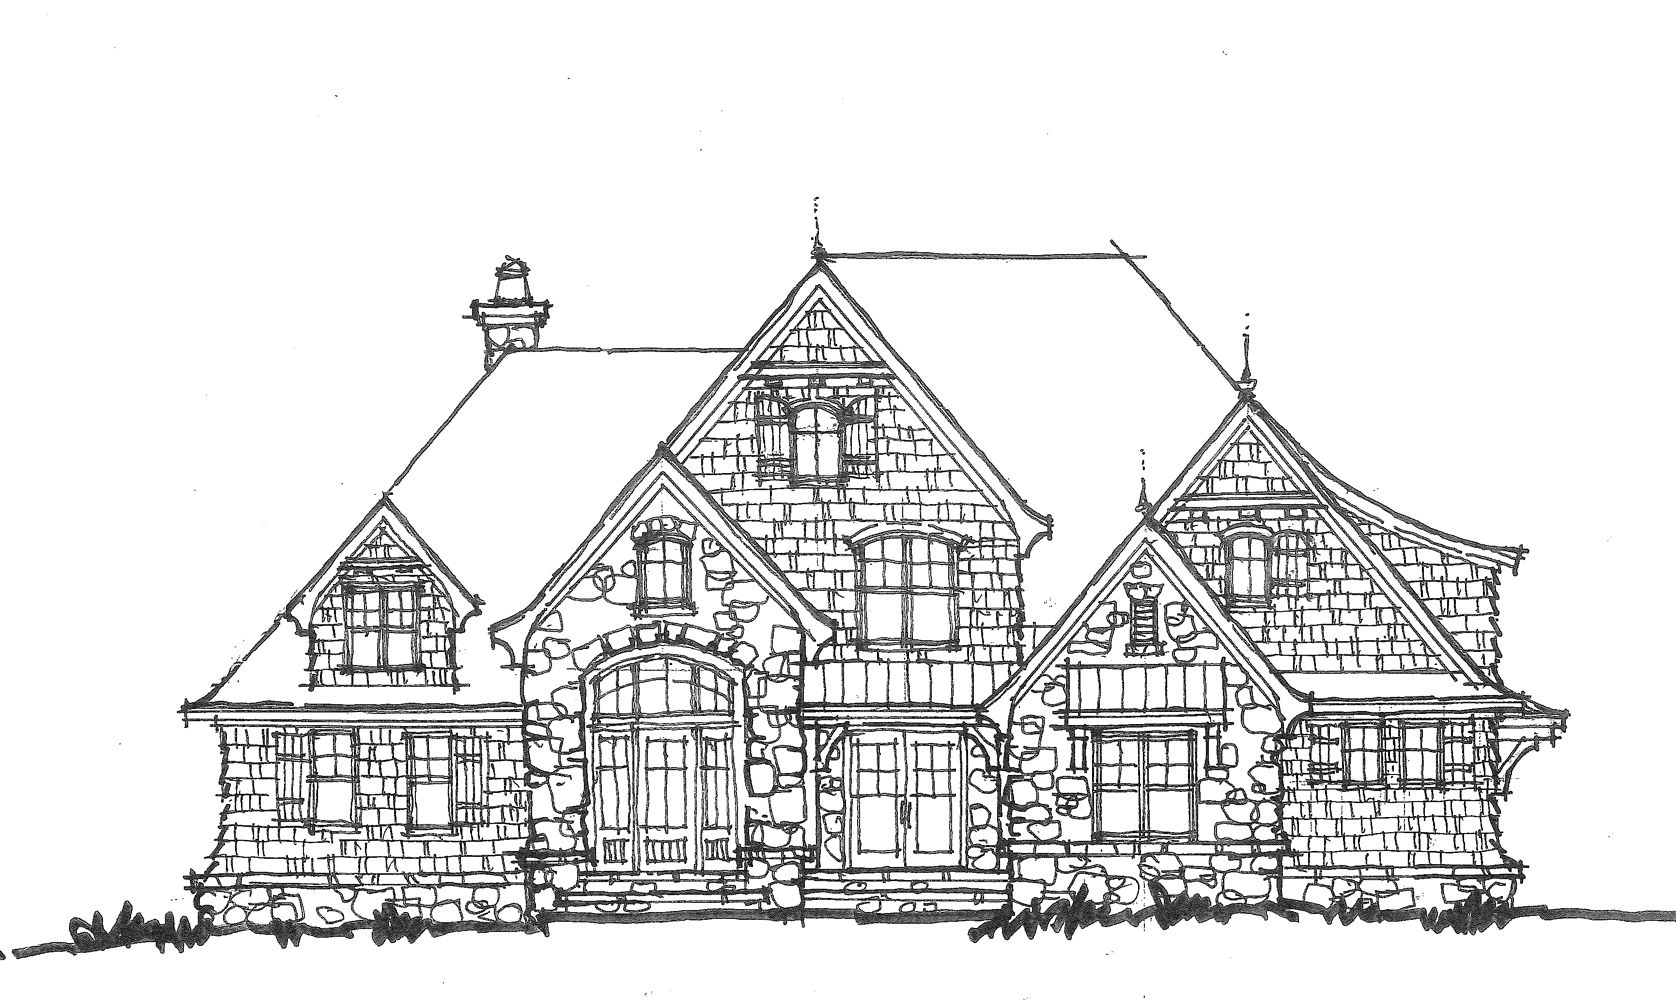 French Hip Roof House Designs on masonry house designs, butterfly roof house designs, hip and gable house, vaulted ceiling house designs, skillion roof house designs, bay house designs, gambrel roof house designs, curved roof house designs, canopy house designs, attic house designs, gable house designs, flat roof house designs, simple wood house designs, pier house designs, best house designs, pitched roof house designs, green roof house designs, modern home roof designs, metal roof house designs, simple roof designs,